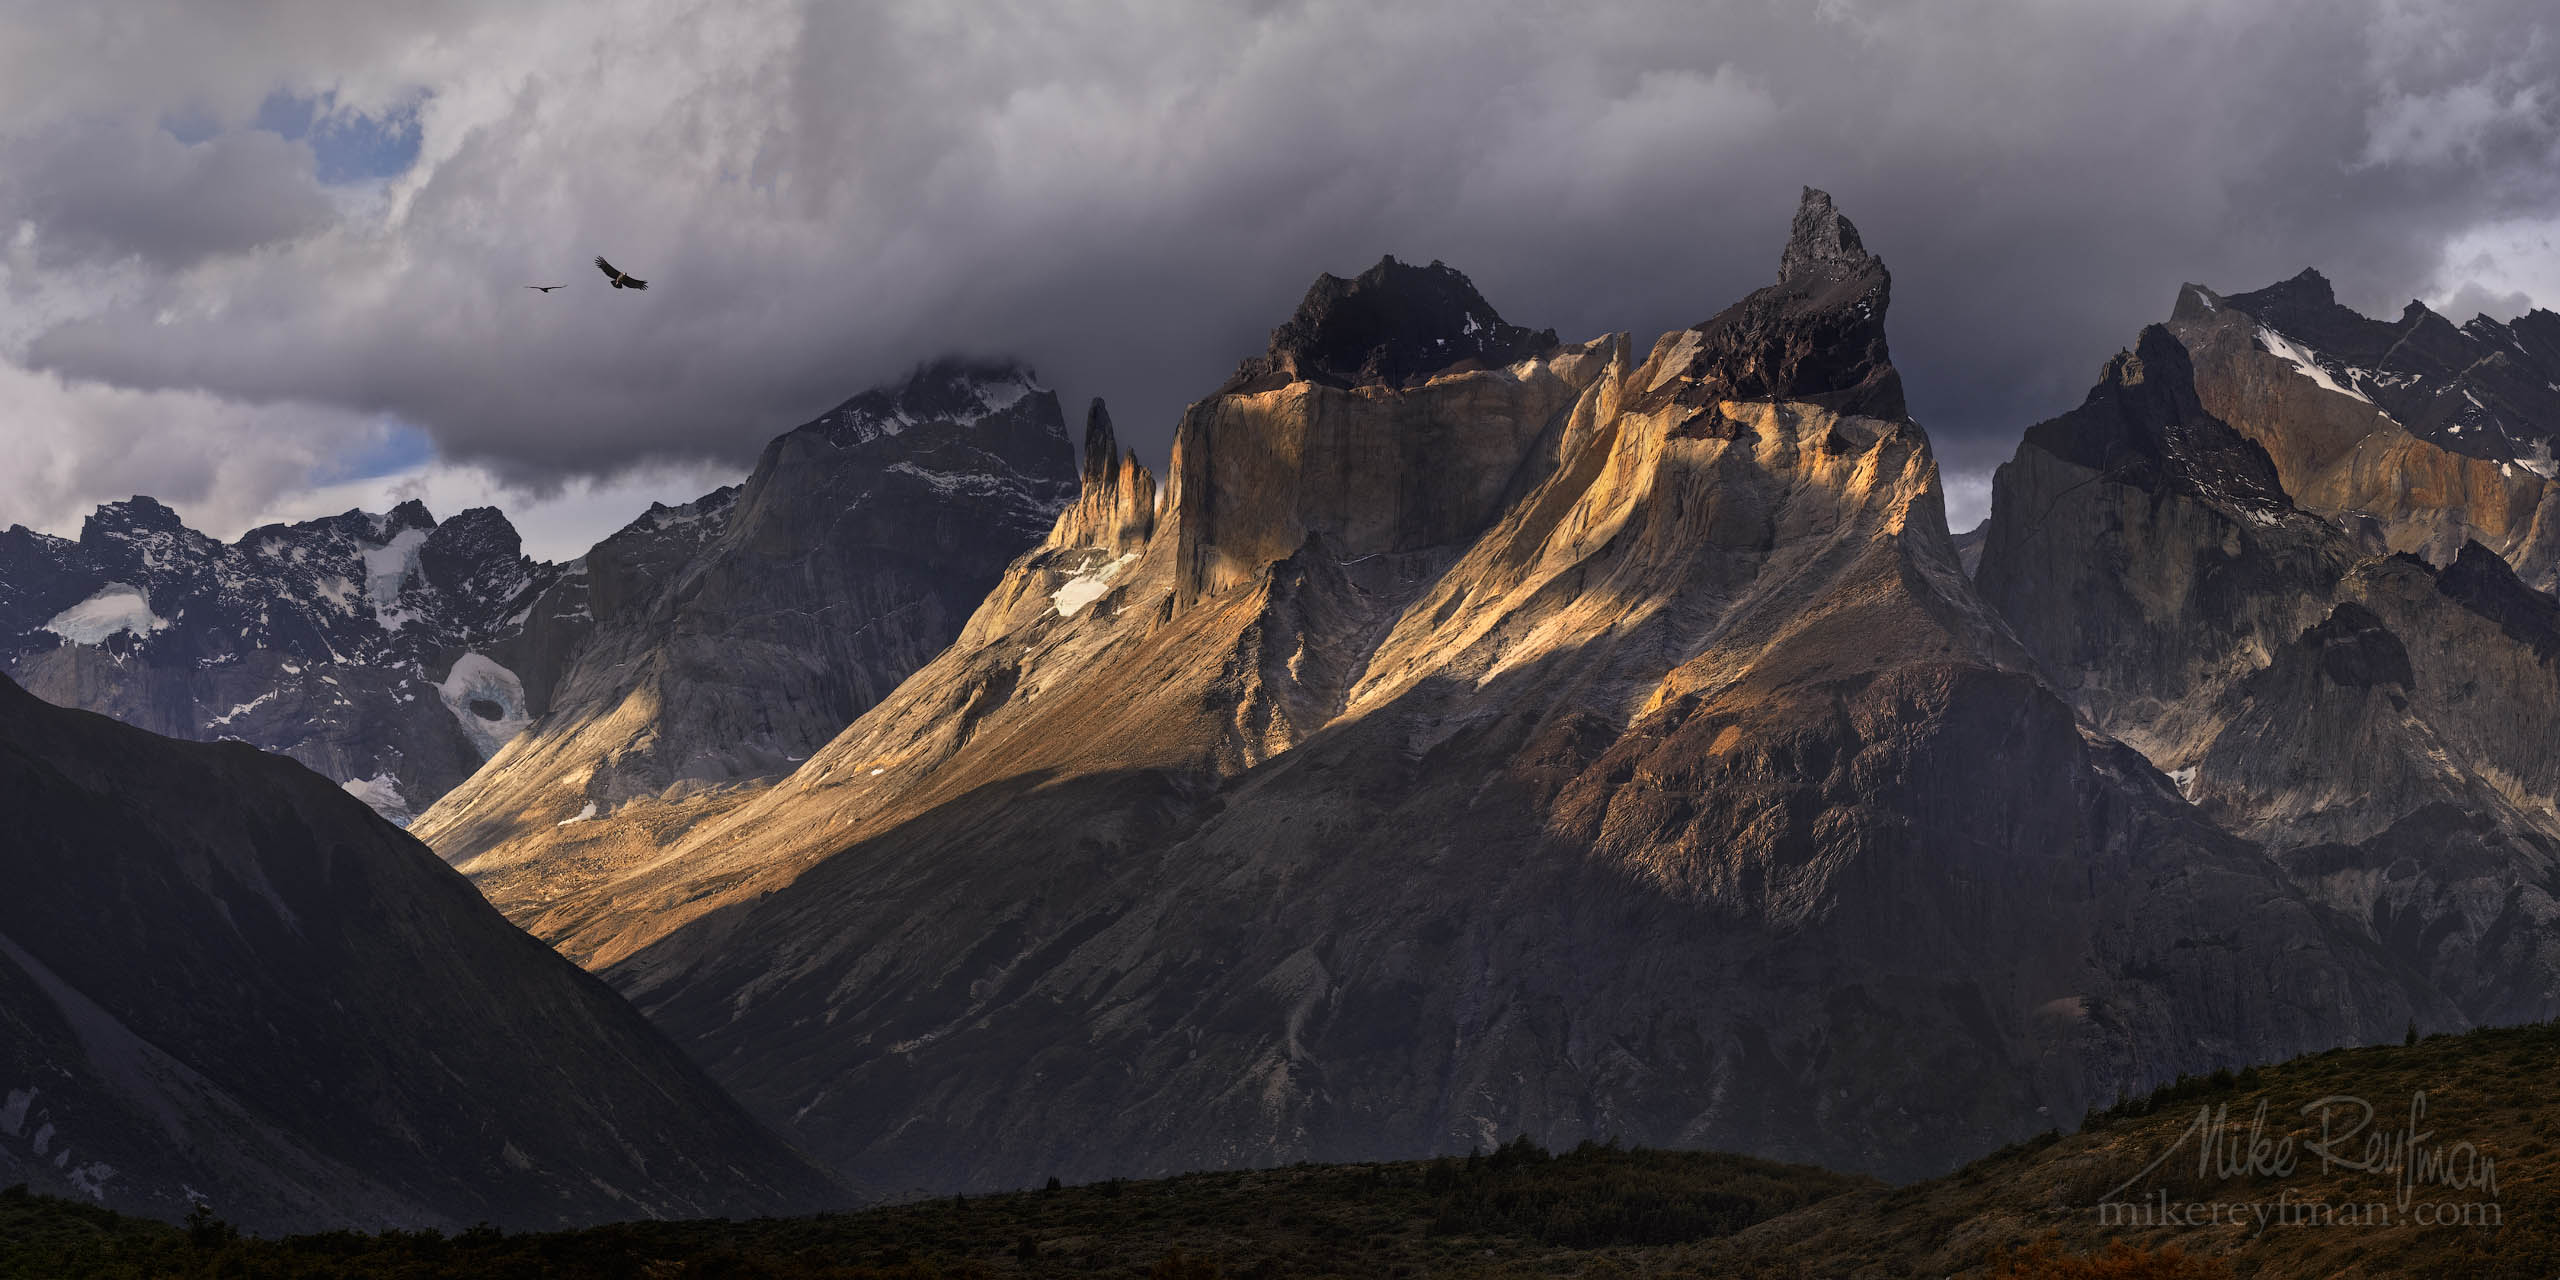 Condors soaring over Cordillera del Paine. Torres del Paine National Park, Ultima Esperanza Province, Magallanes and Antartica Chilena Region XII, Patagonia, Chile. P12-MR47304-10-Pano - Selected panoramic images with 2:1 aspect ratio - Mike Reyfman Photography